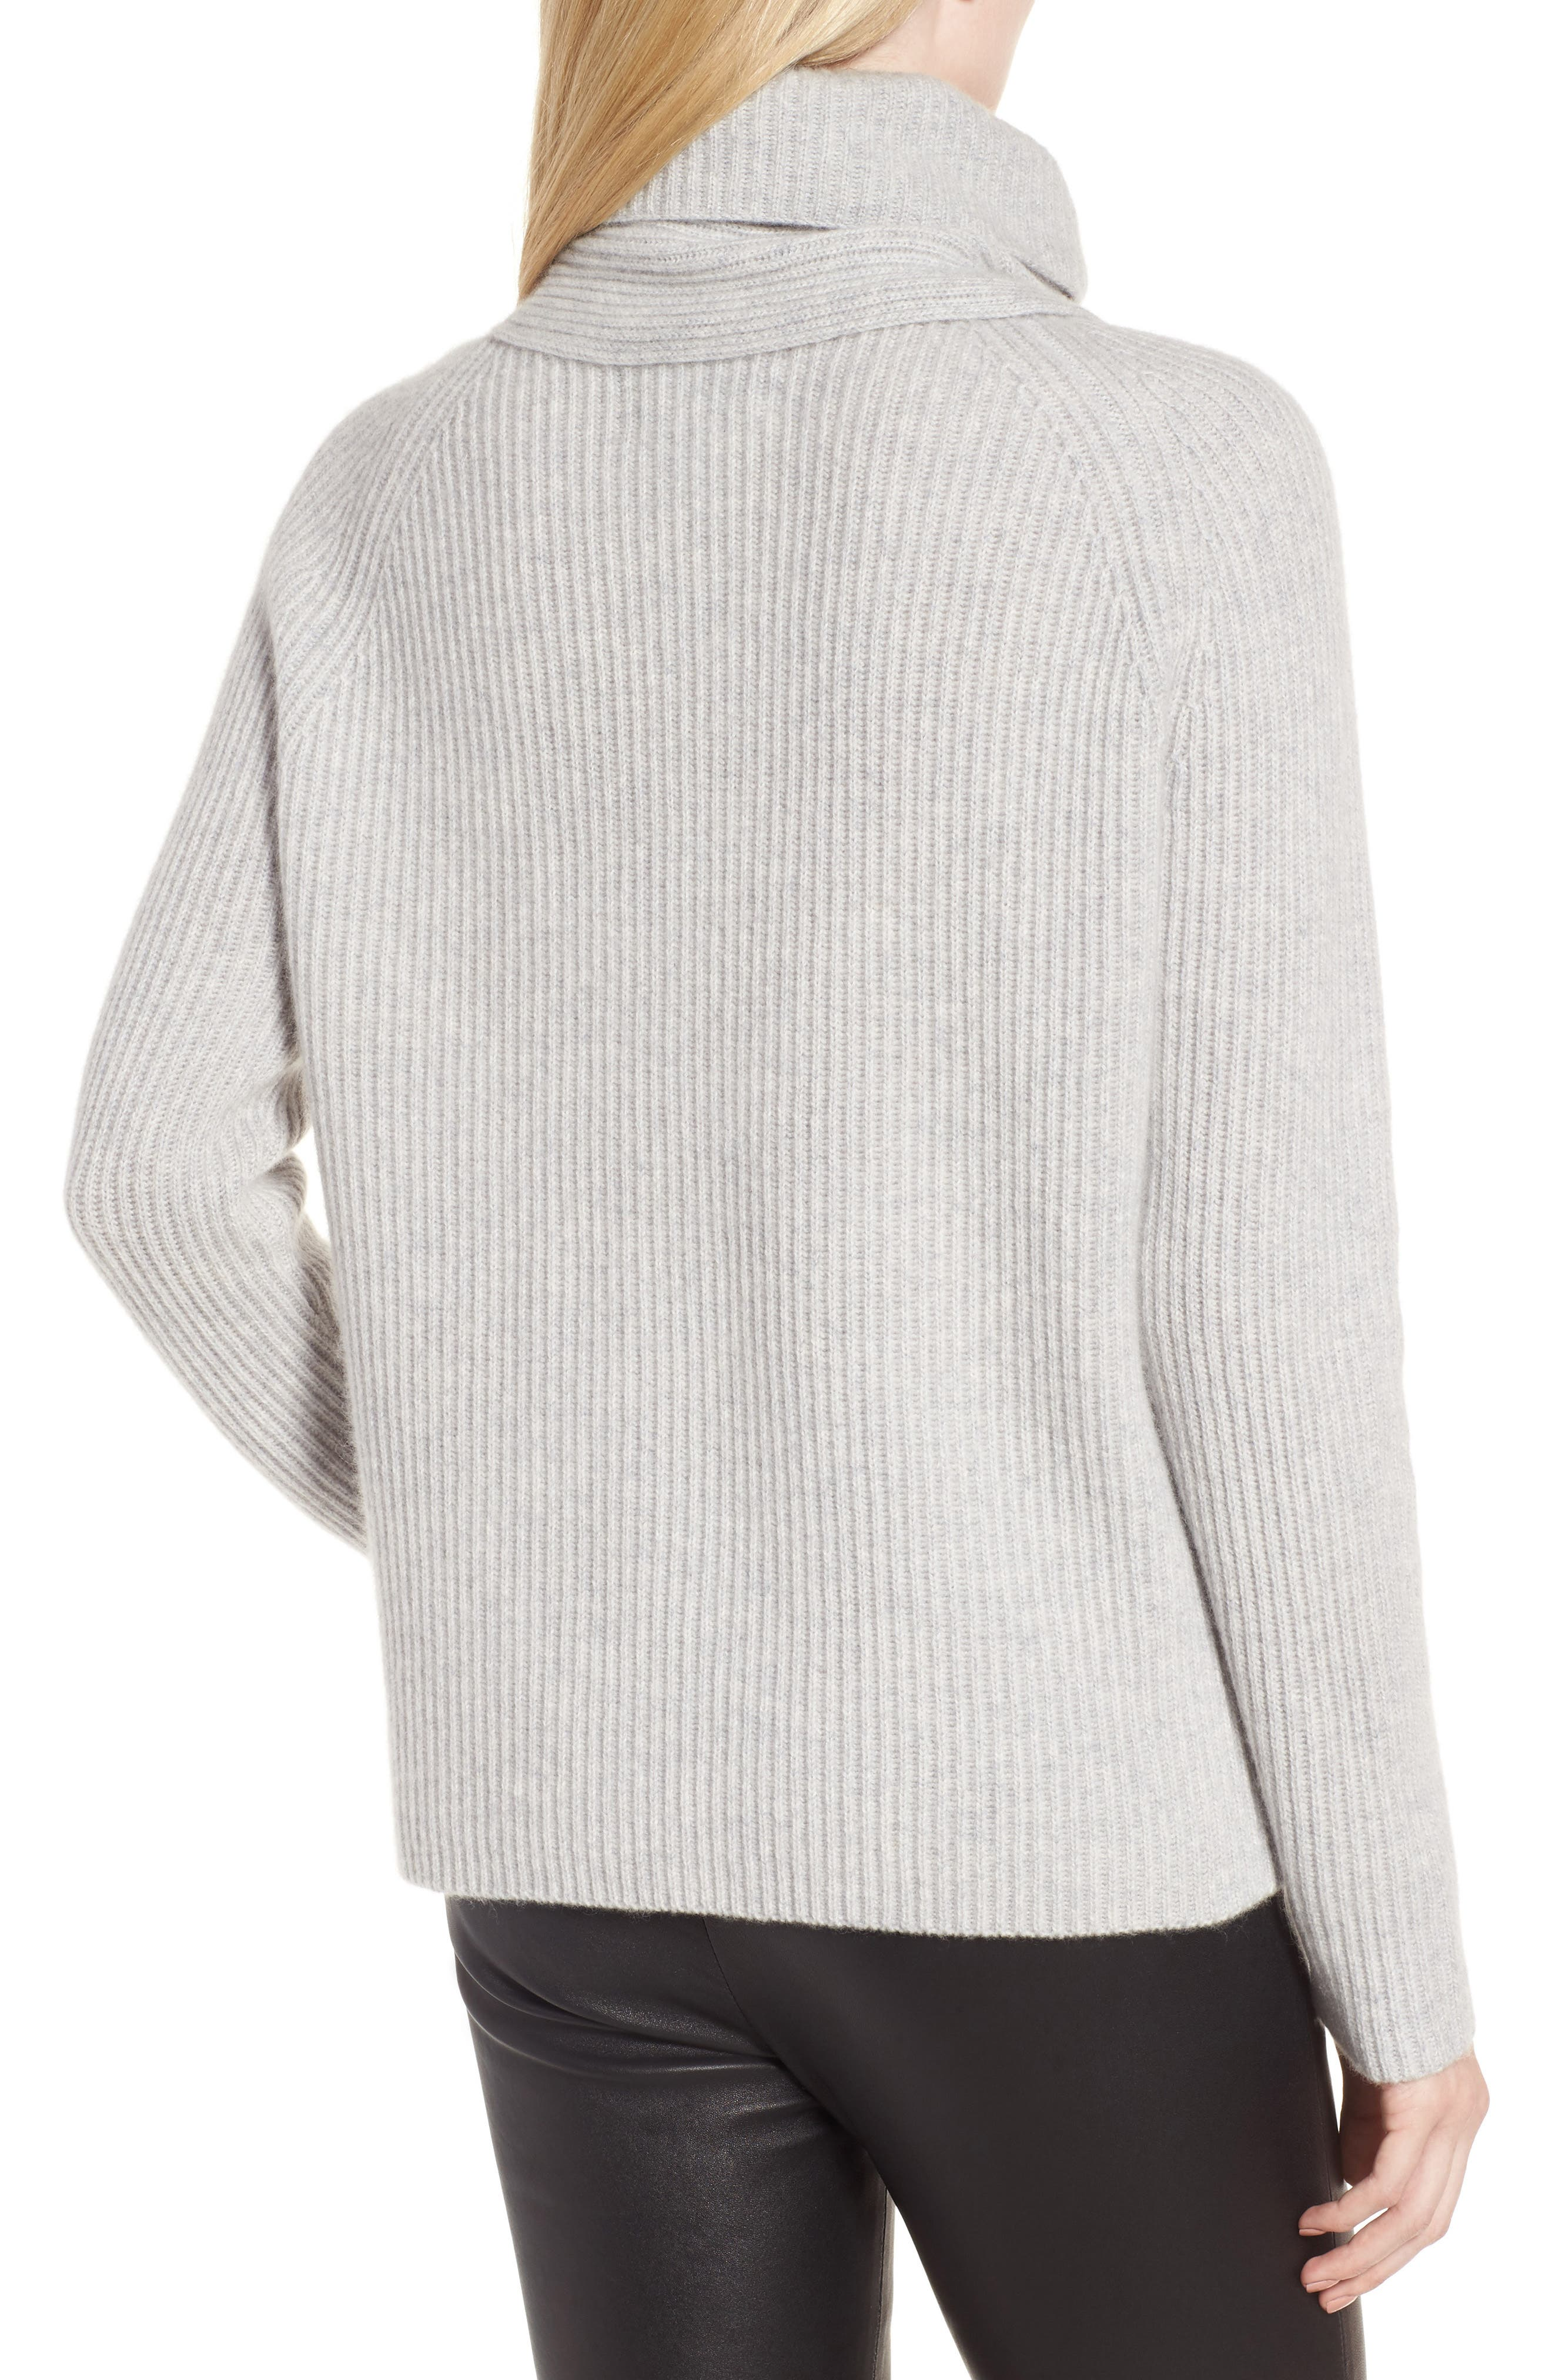 Scarf Neck Cashmere Sweater,                             Alternate thumbnail 3, color,                             Grey Clay Heather